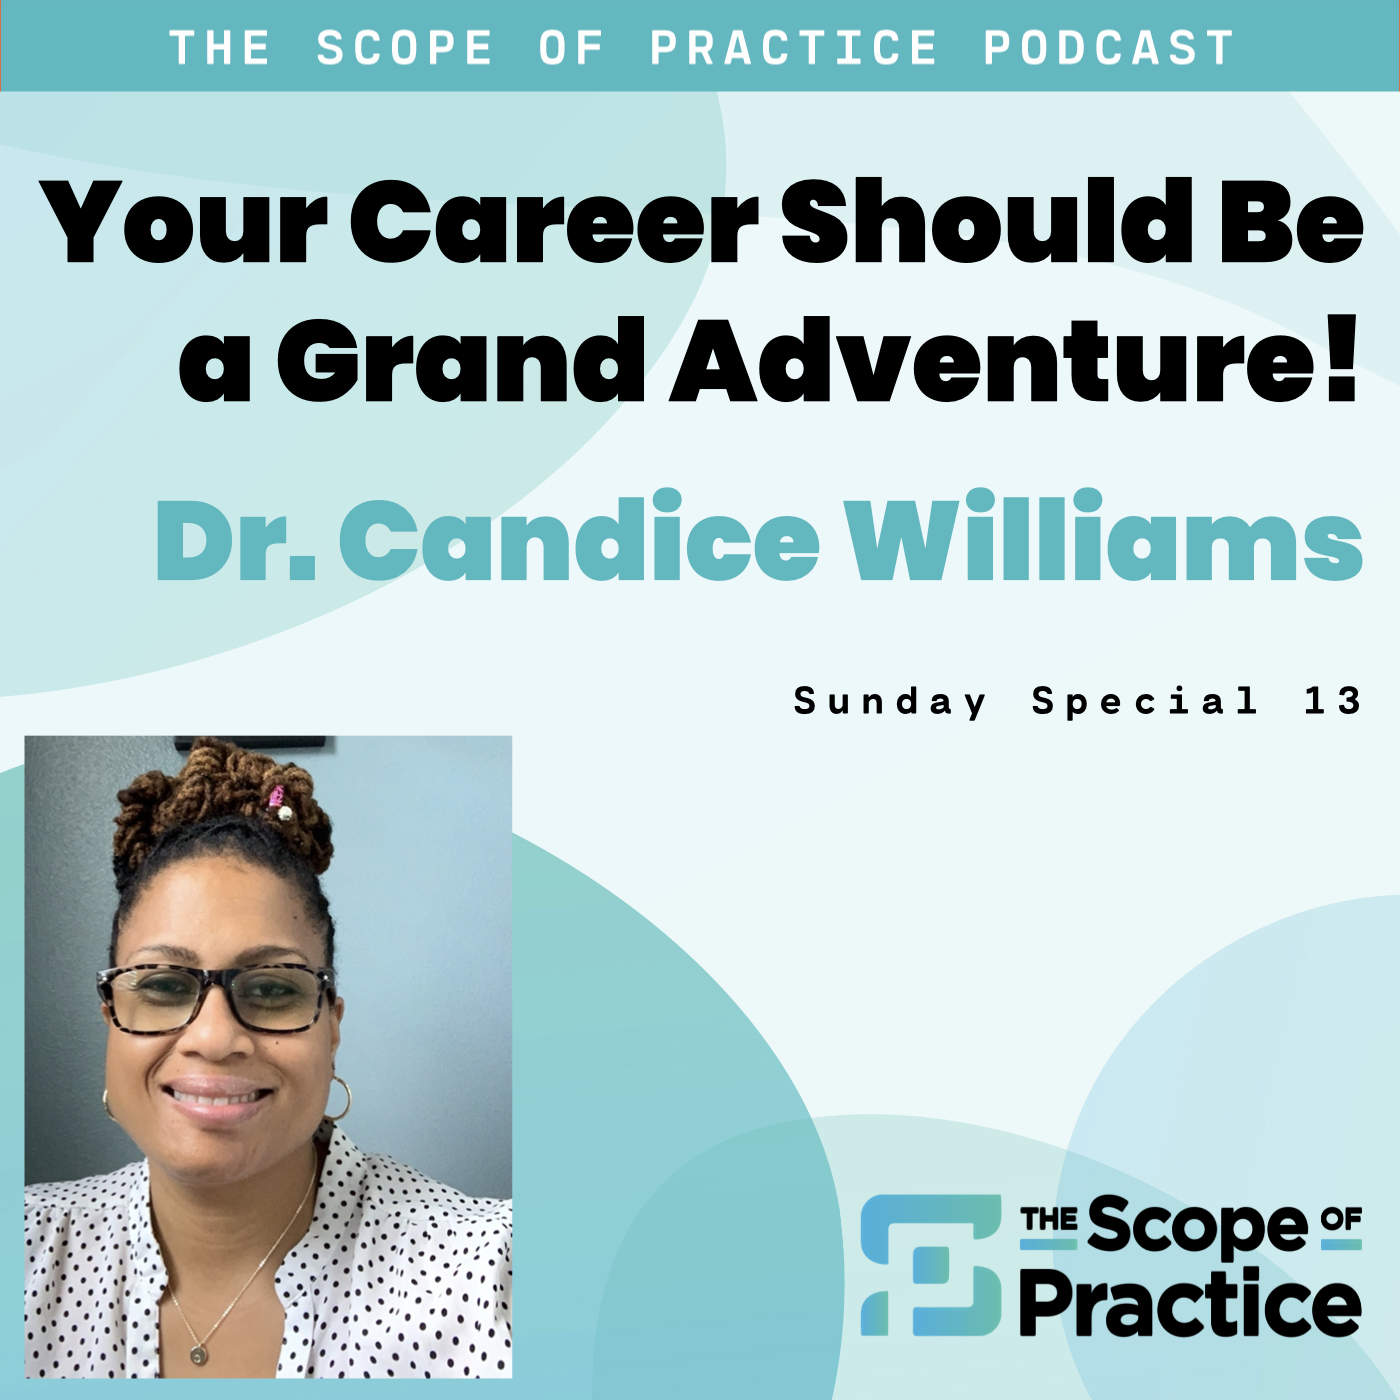 Dr. Candice Williams Keyboard Doc